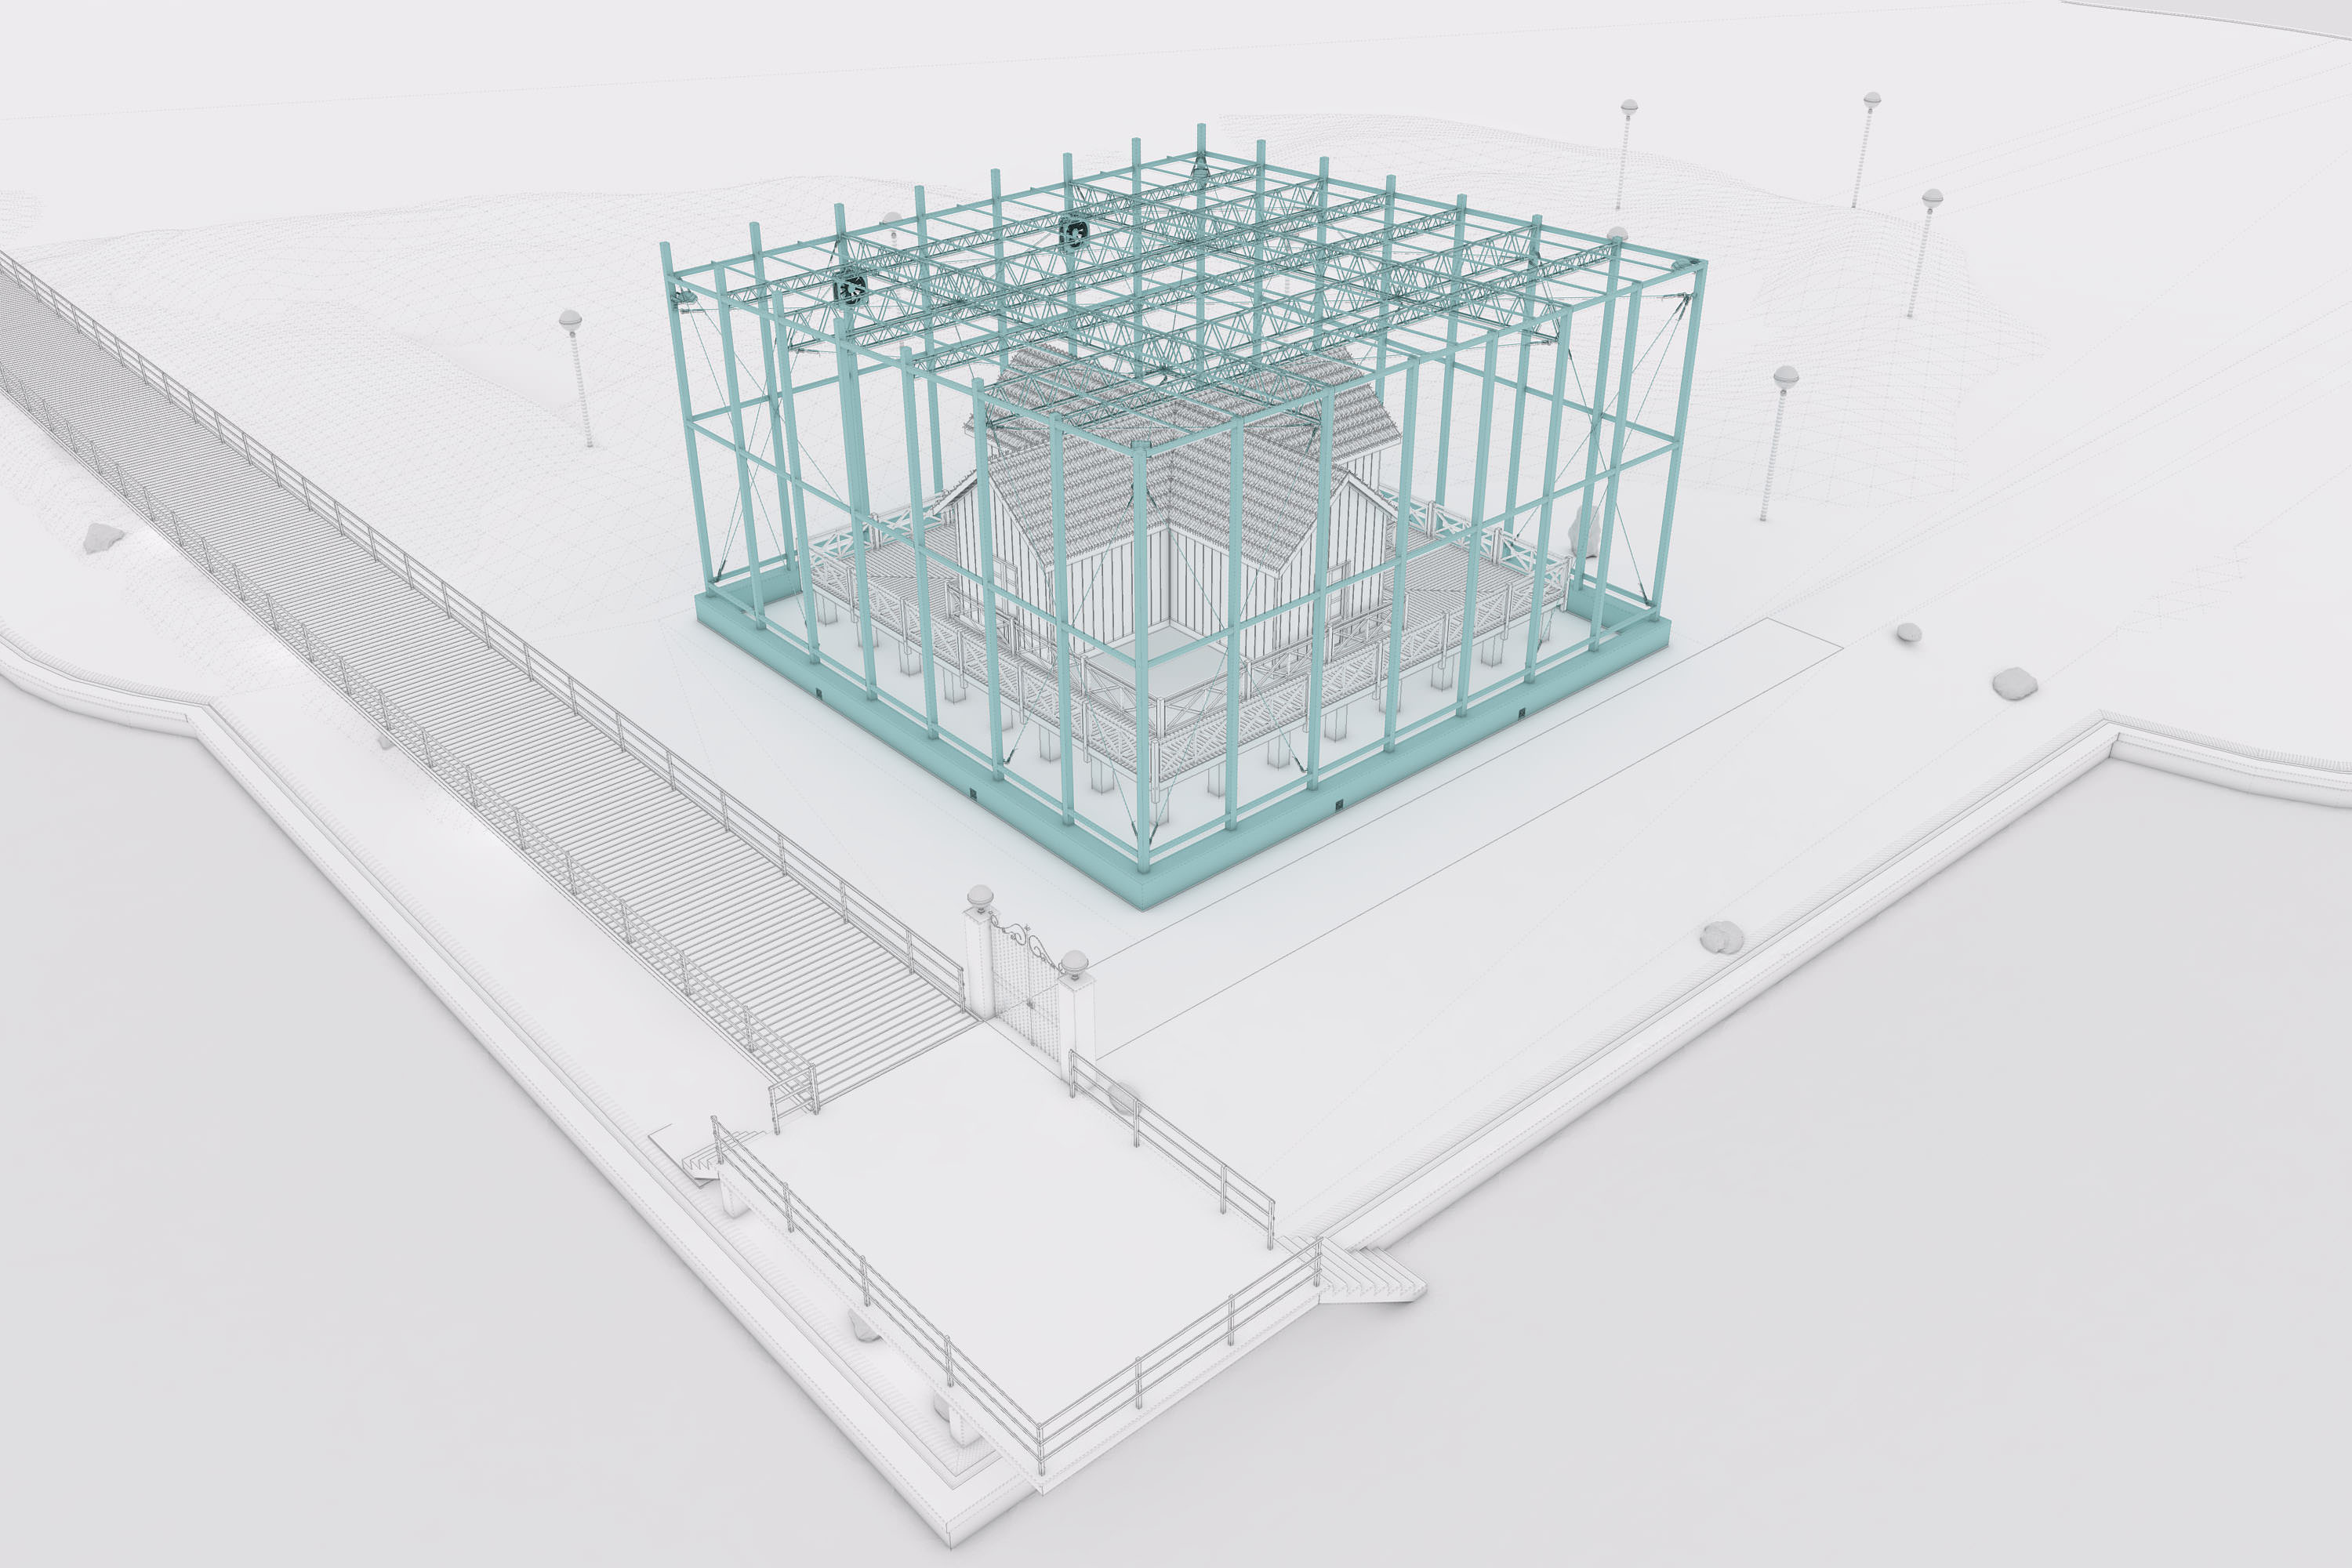 SketchUp and Skatter Making of Sarmiento Museum - 3d Modeling